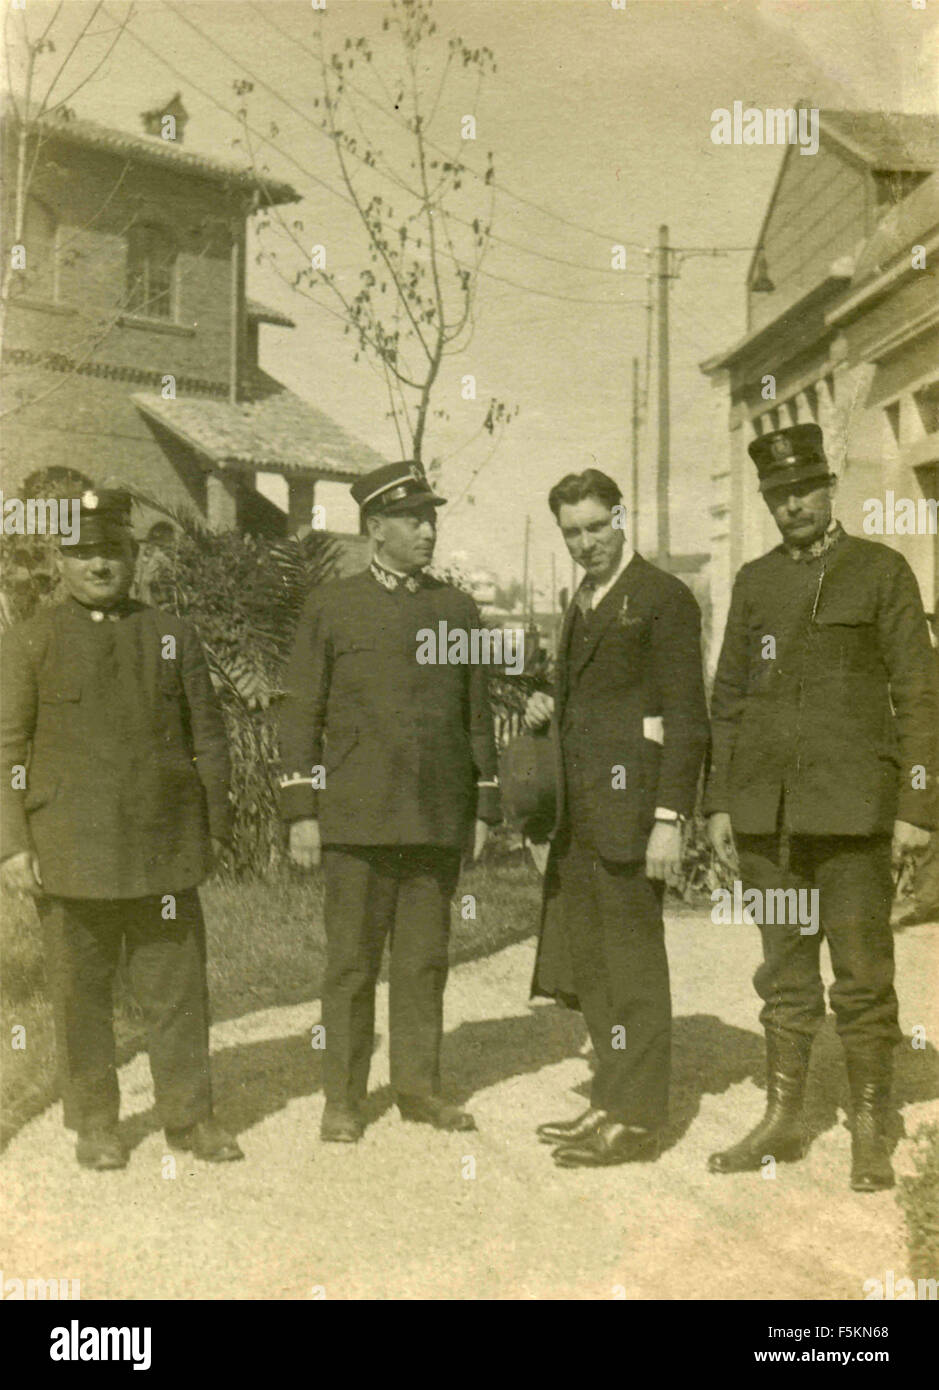 Three soldiers and a civilian at the Milan Fair 1926, Italy - Stock Image